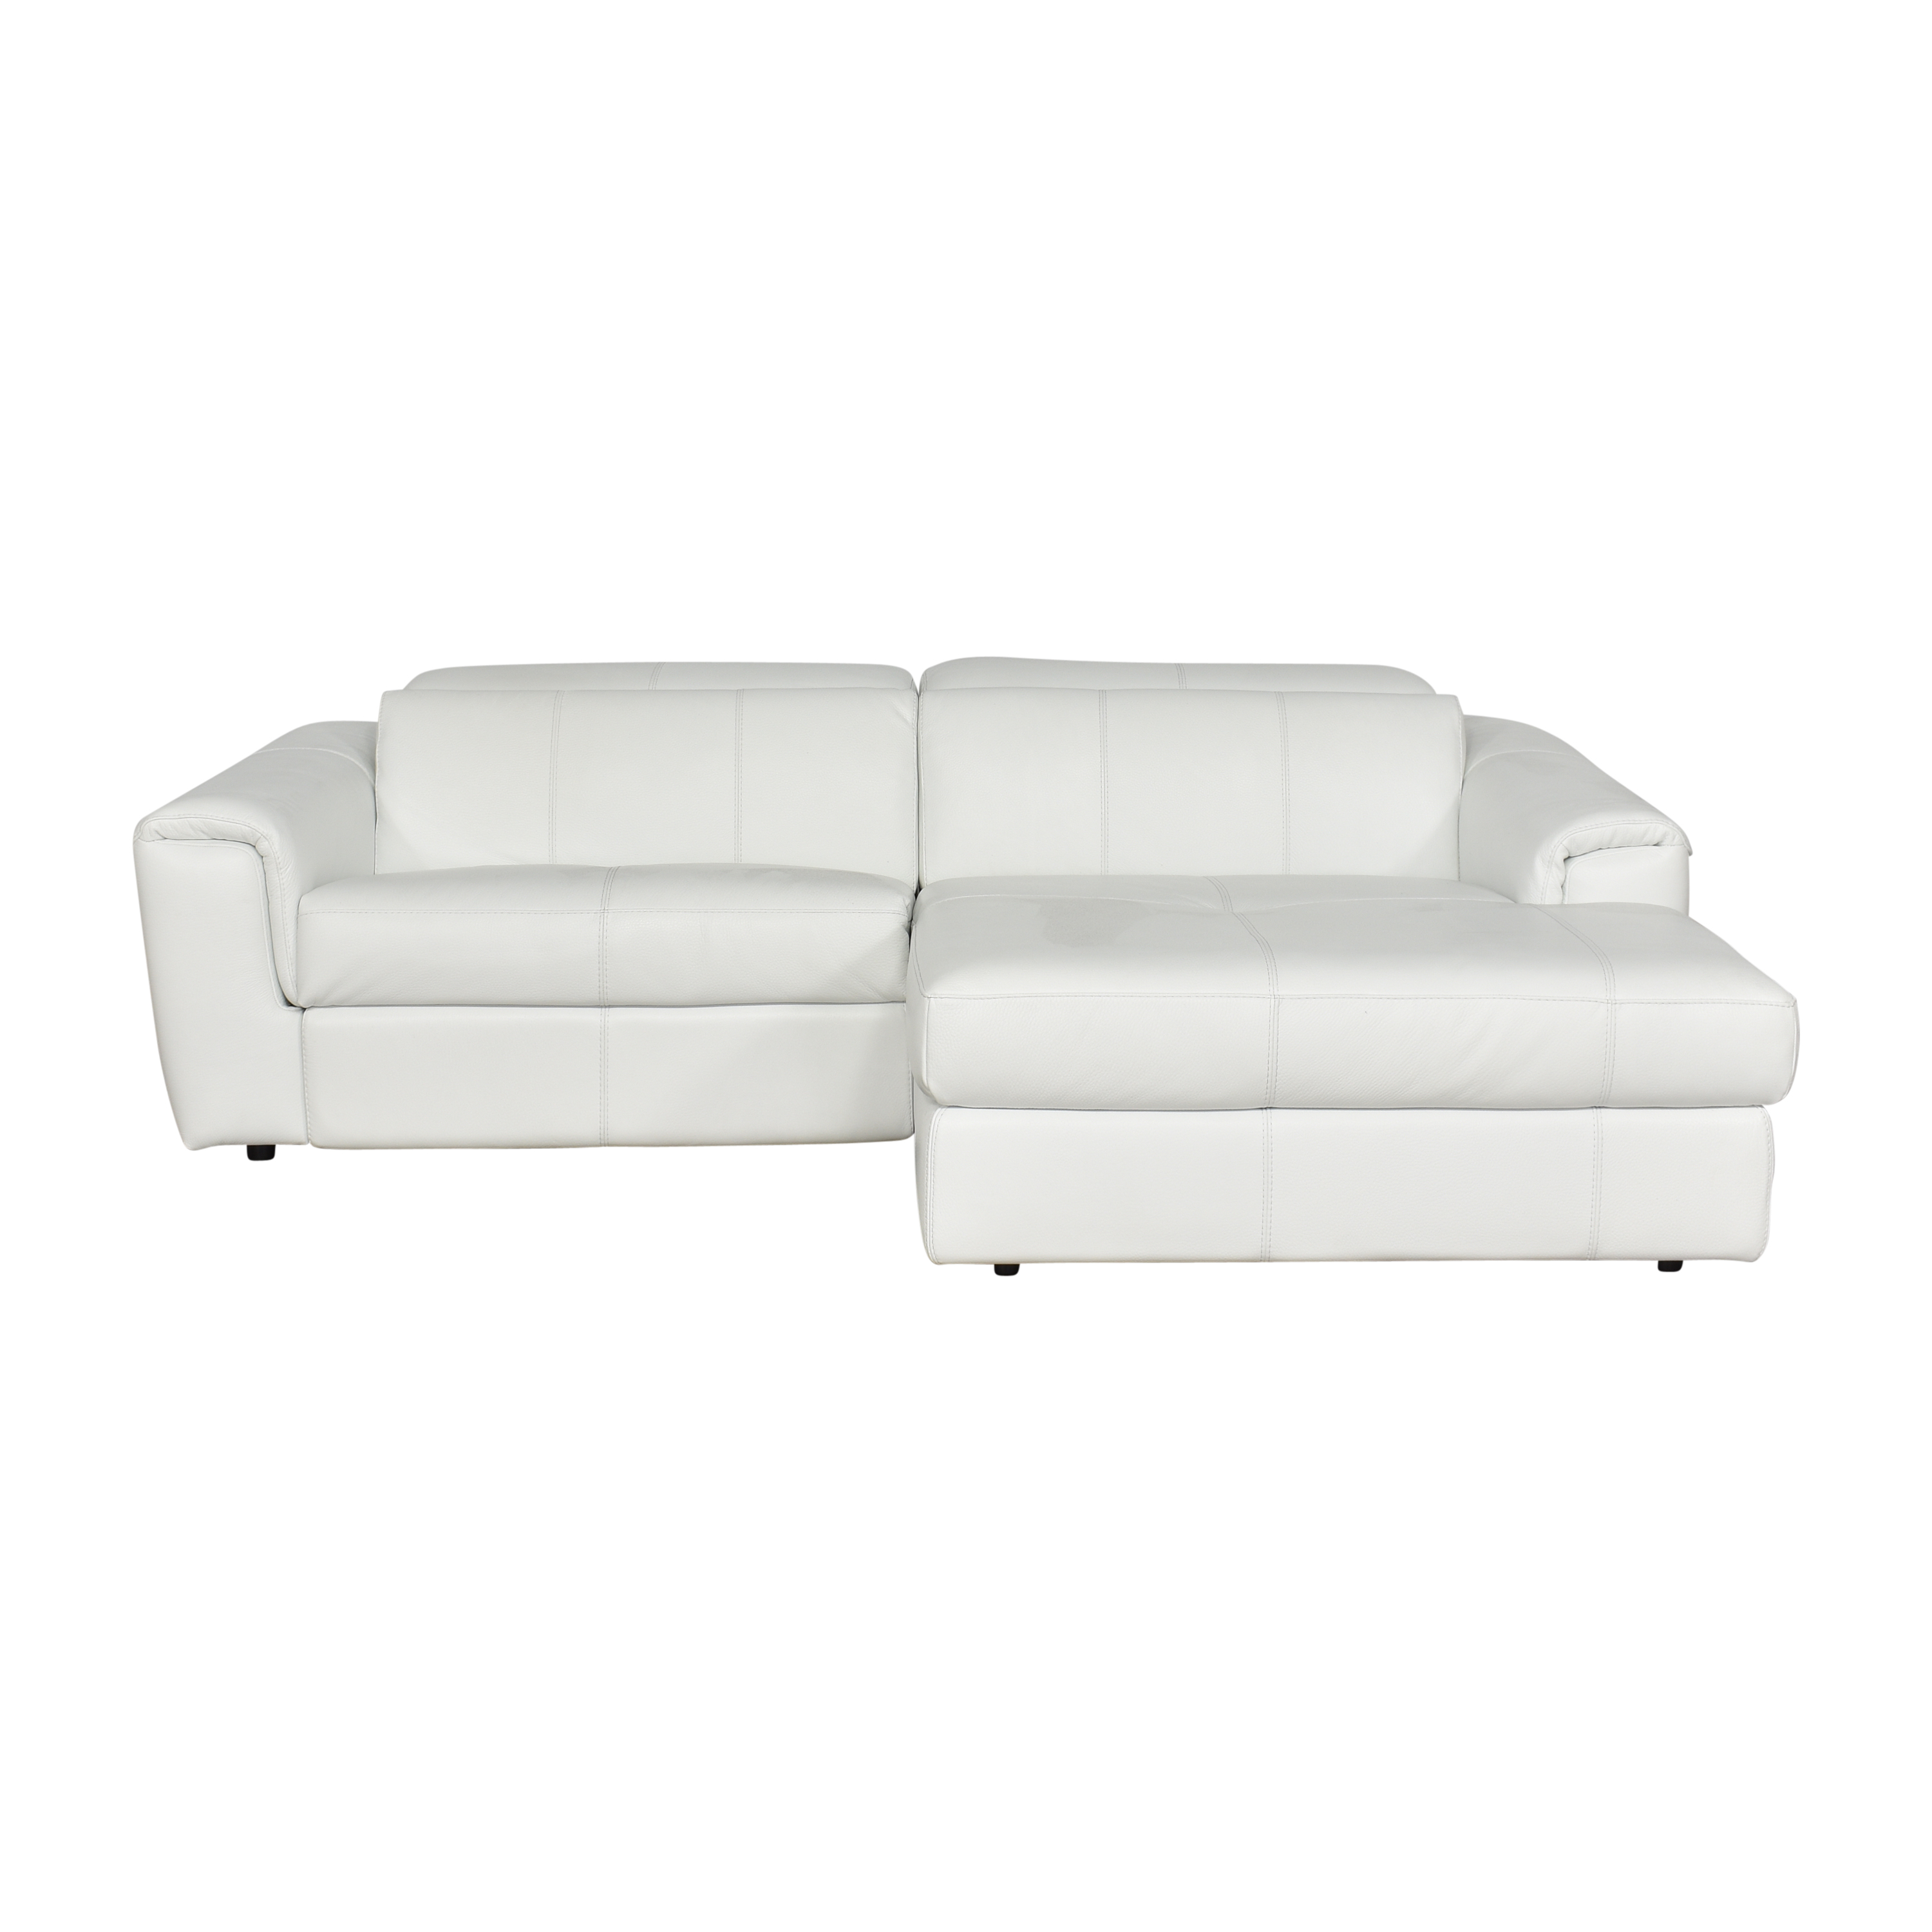 Nicoletti Home Nicoletti Palermo Two Piece Motion Sectional ct